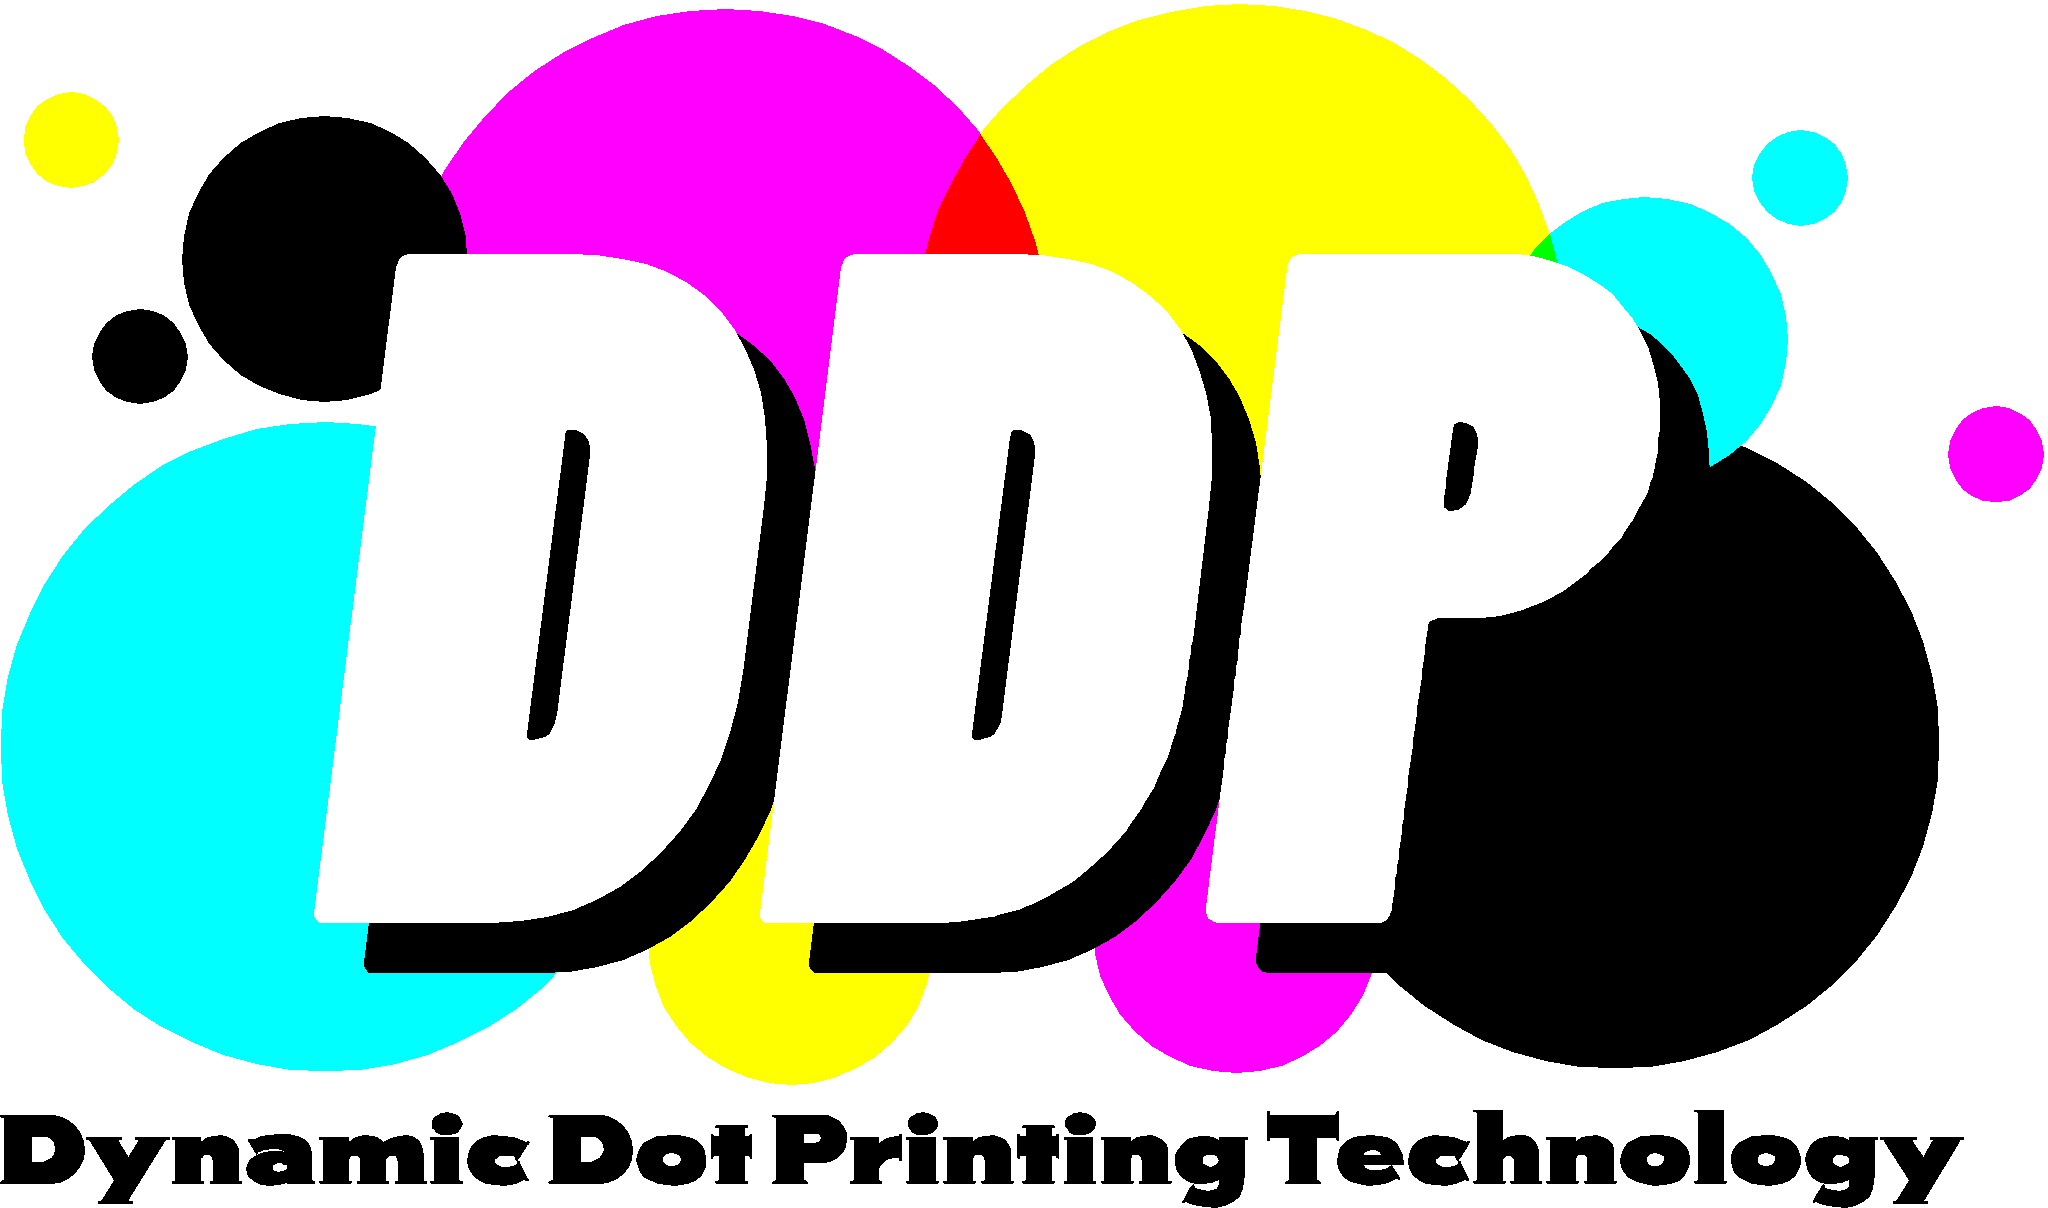 Dynamic Dot Printing (DDP) Technology